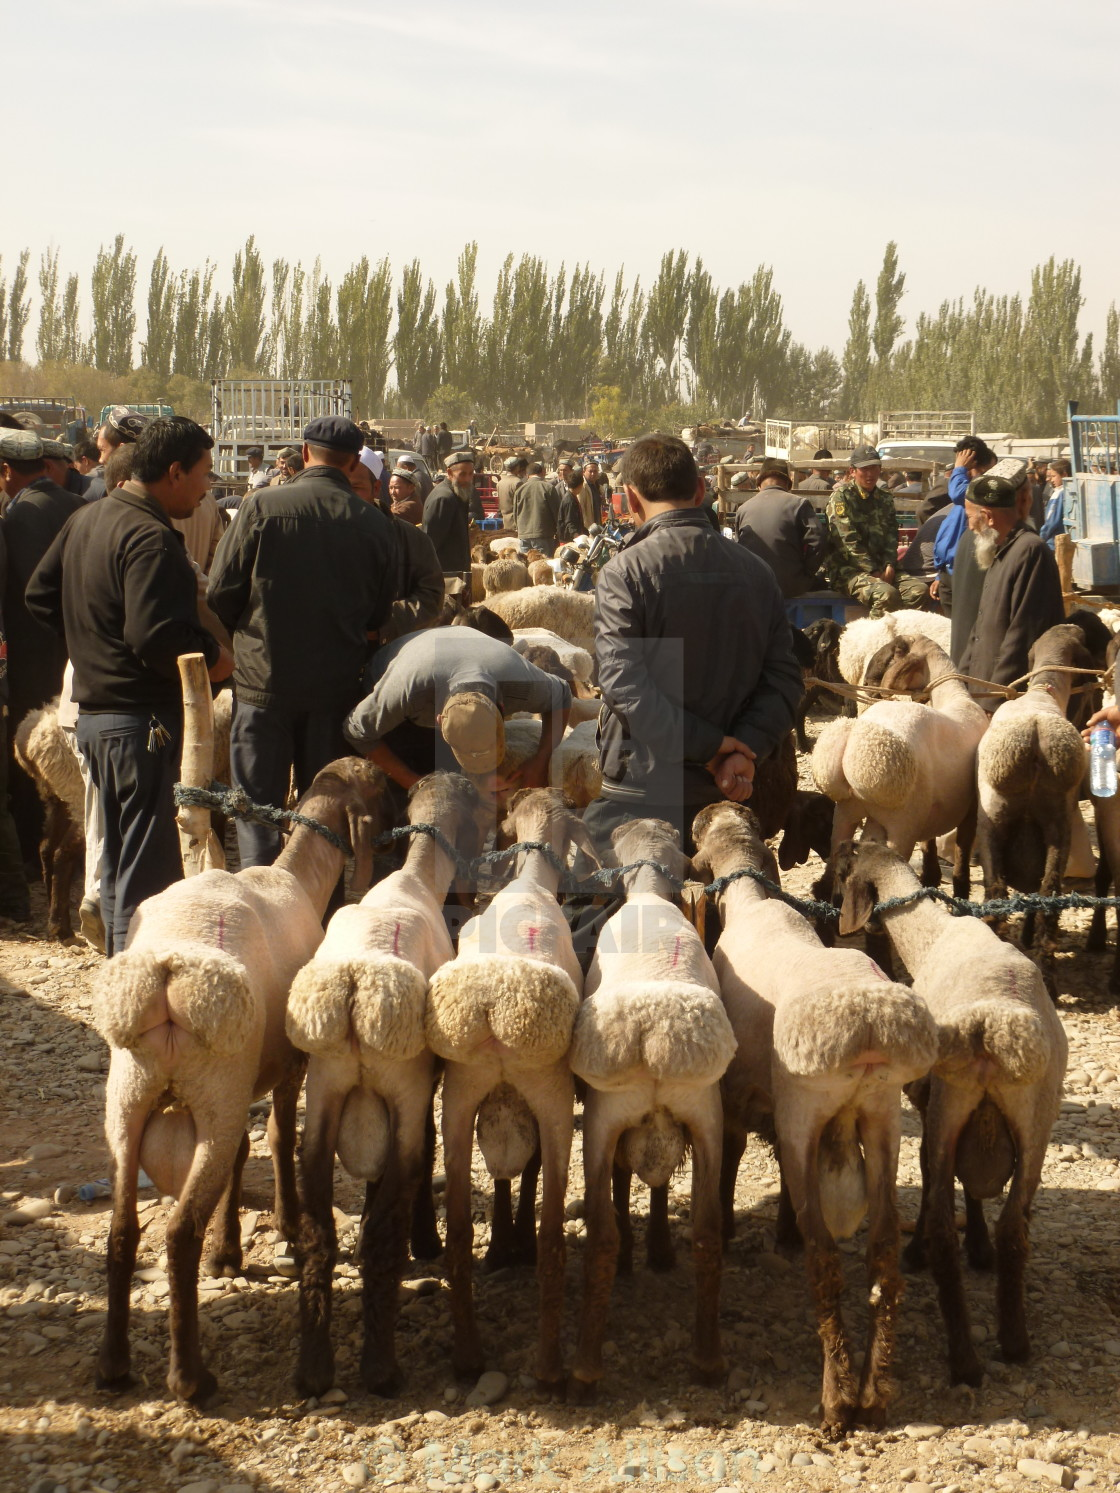 """Sheep in market"" stock image"